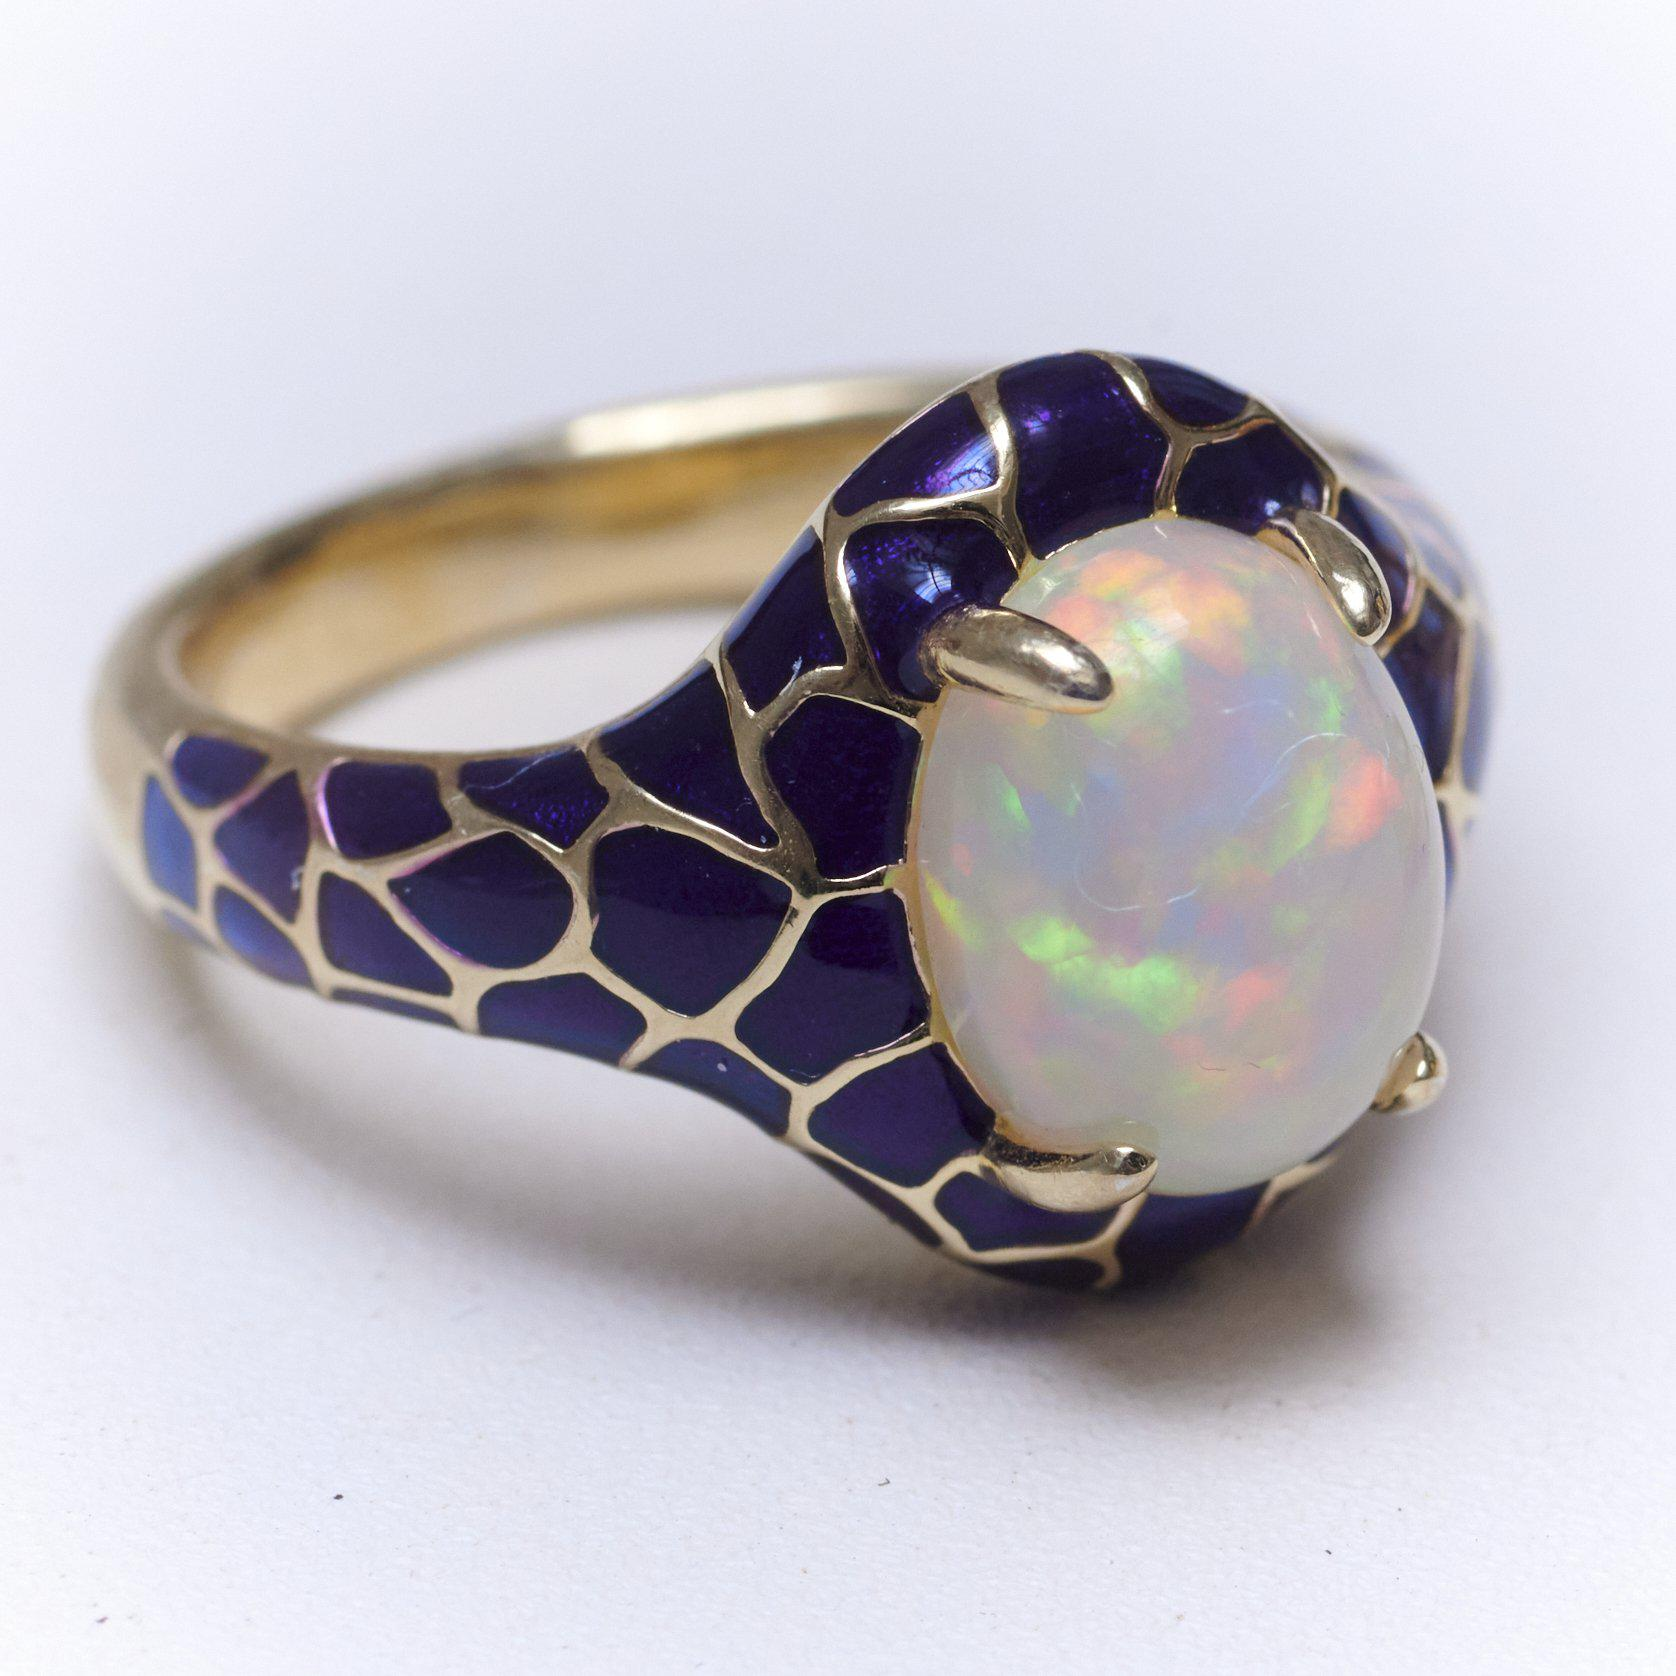 Opal Cabochon and Ceramic Ring